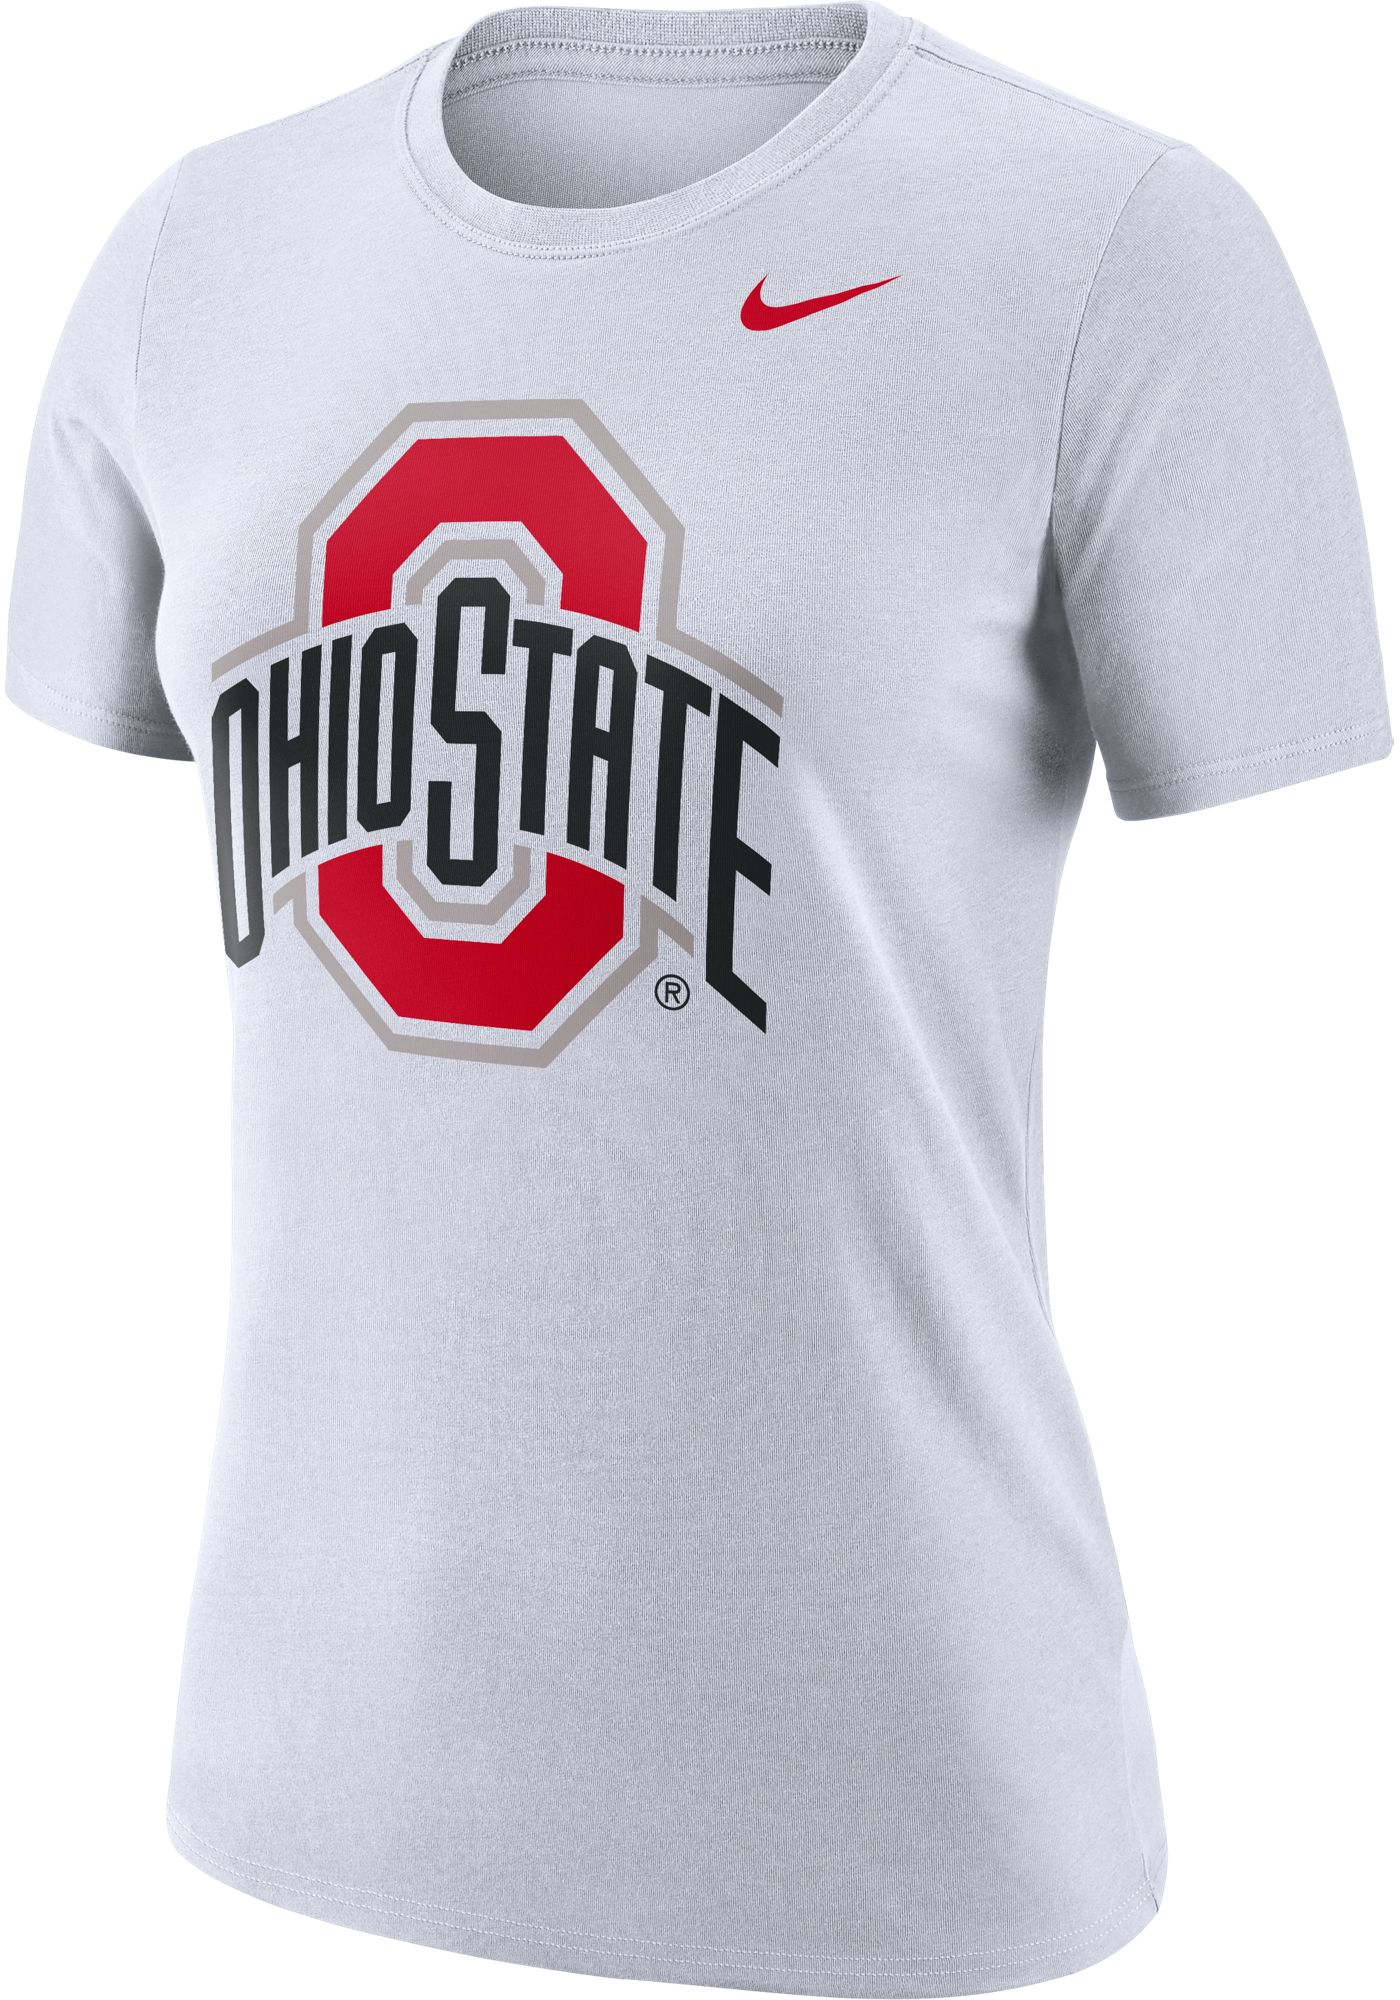 Nike Women's Ohio State Buckeyes Dri-FIT Logo Crew White T-Shirt